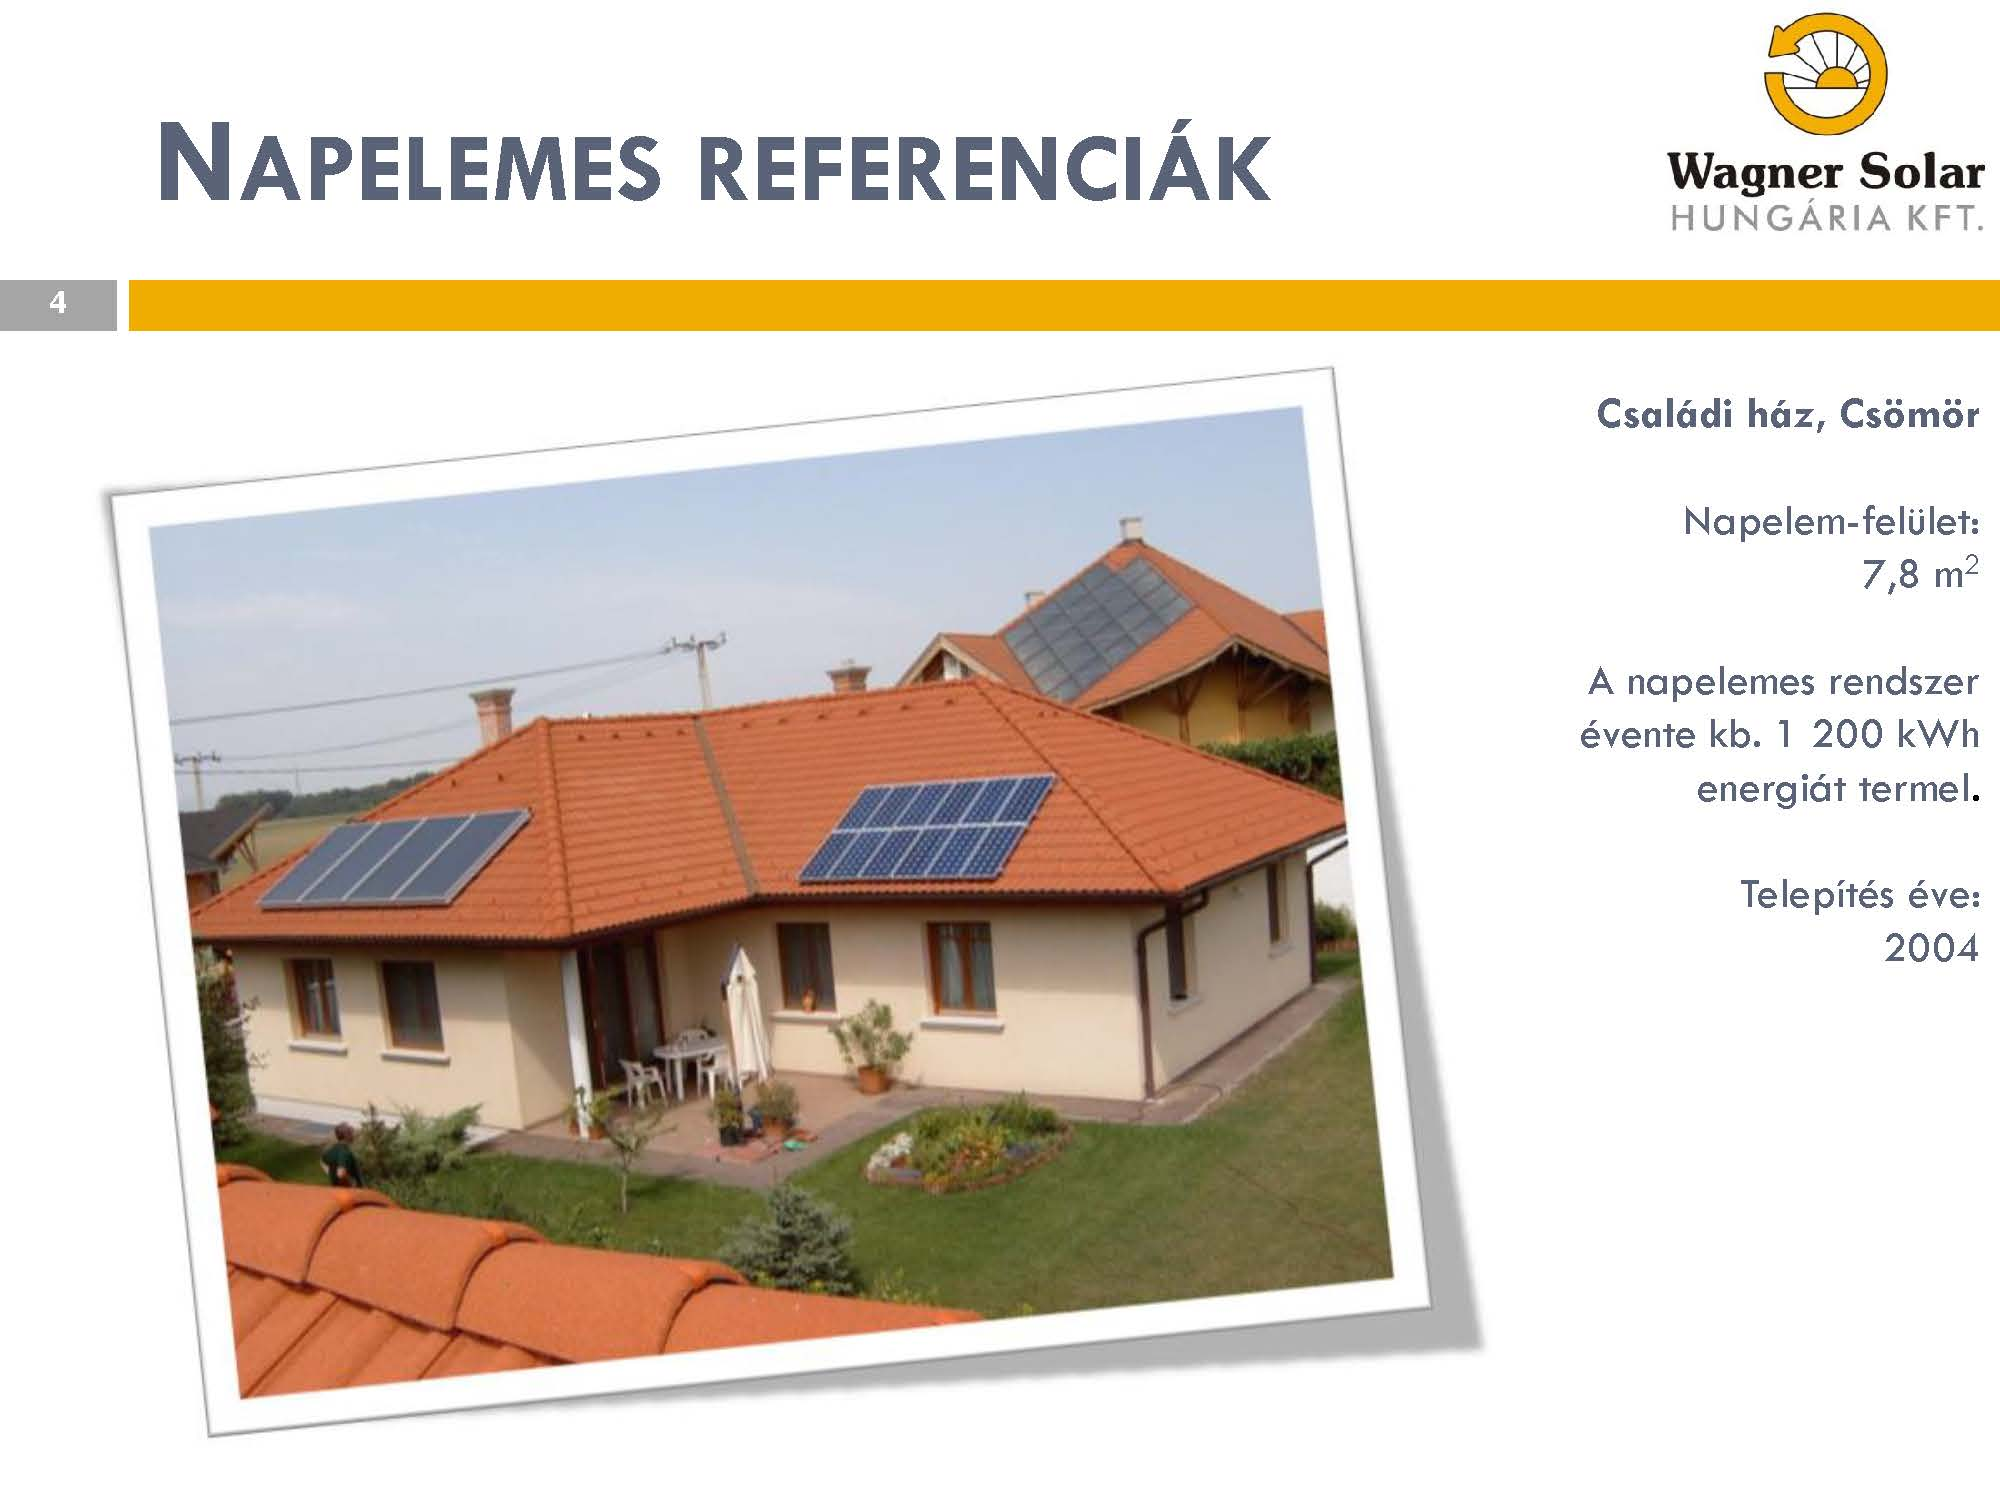 wagnersolar_referencia_2016_page_04.jpg